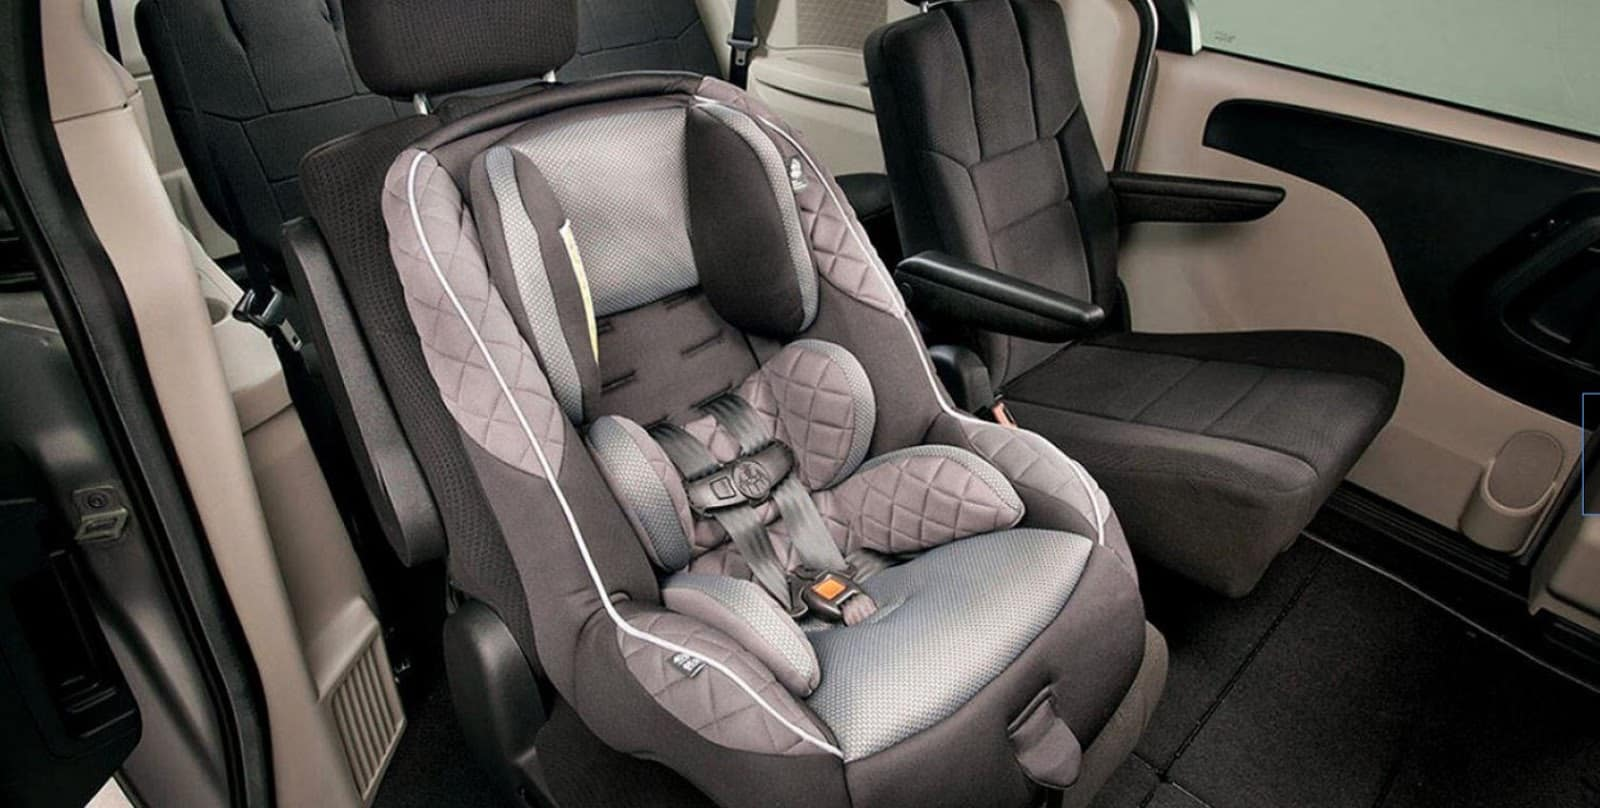 dodge grand caravan car seat capability shown by gray carseat in seat